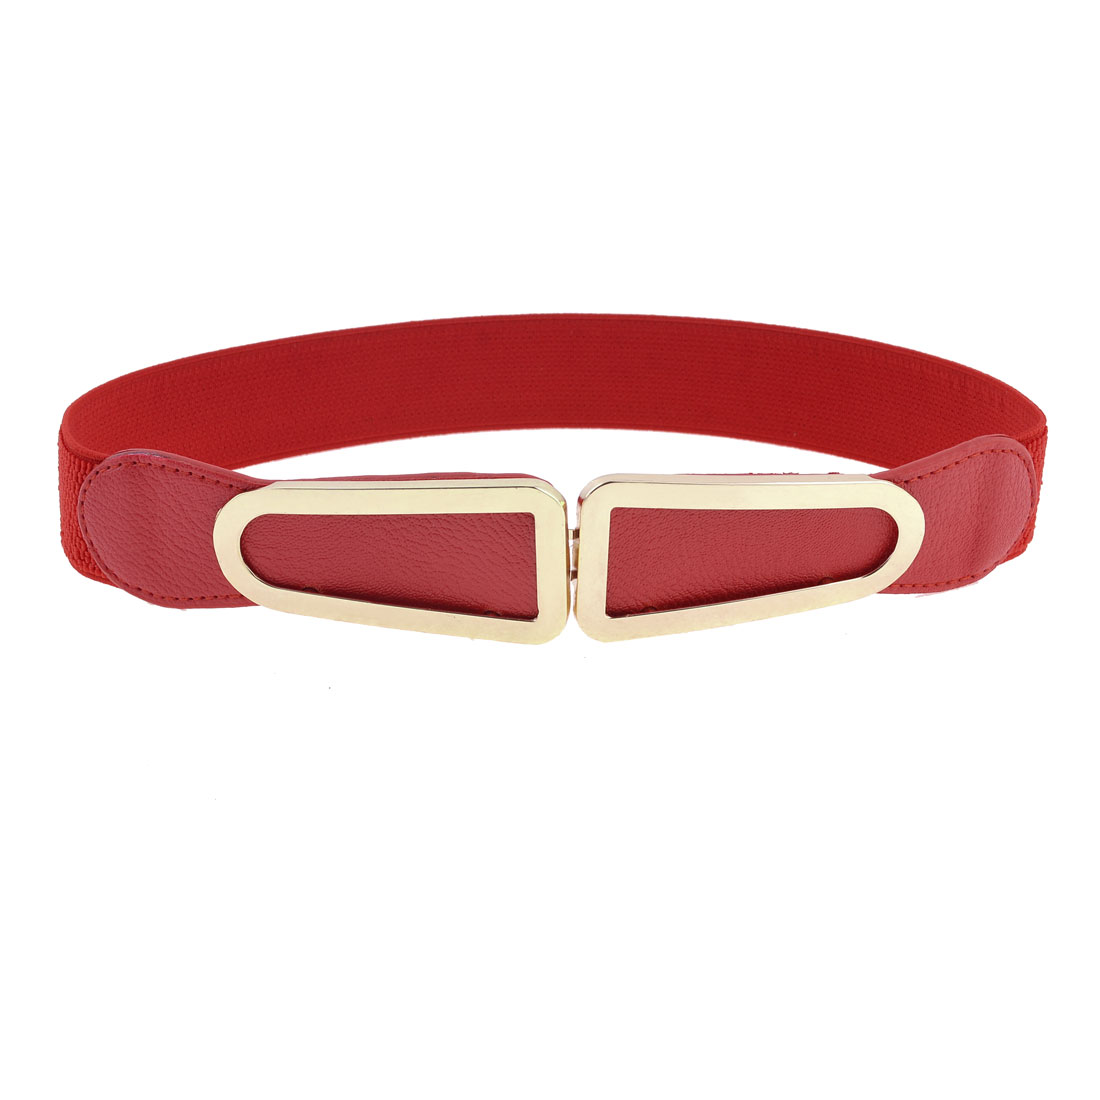 Red Elastic Cotton Fabric Band Copper Tone Metal Buckle Waist Belt for Women